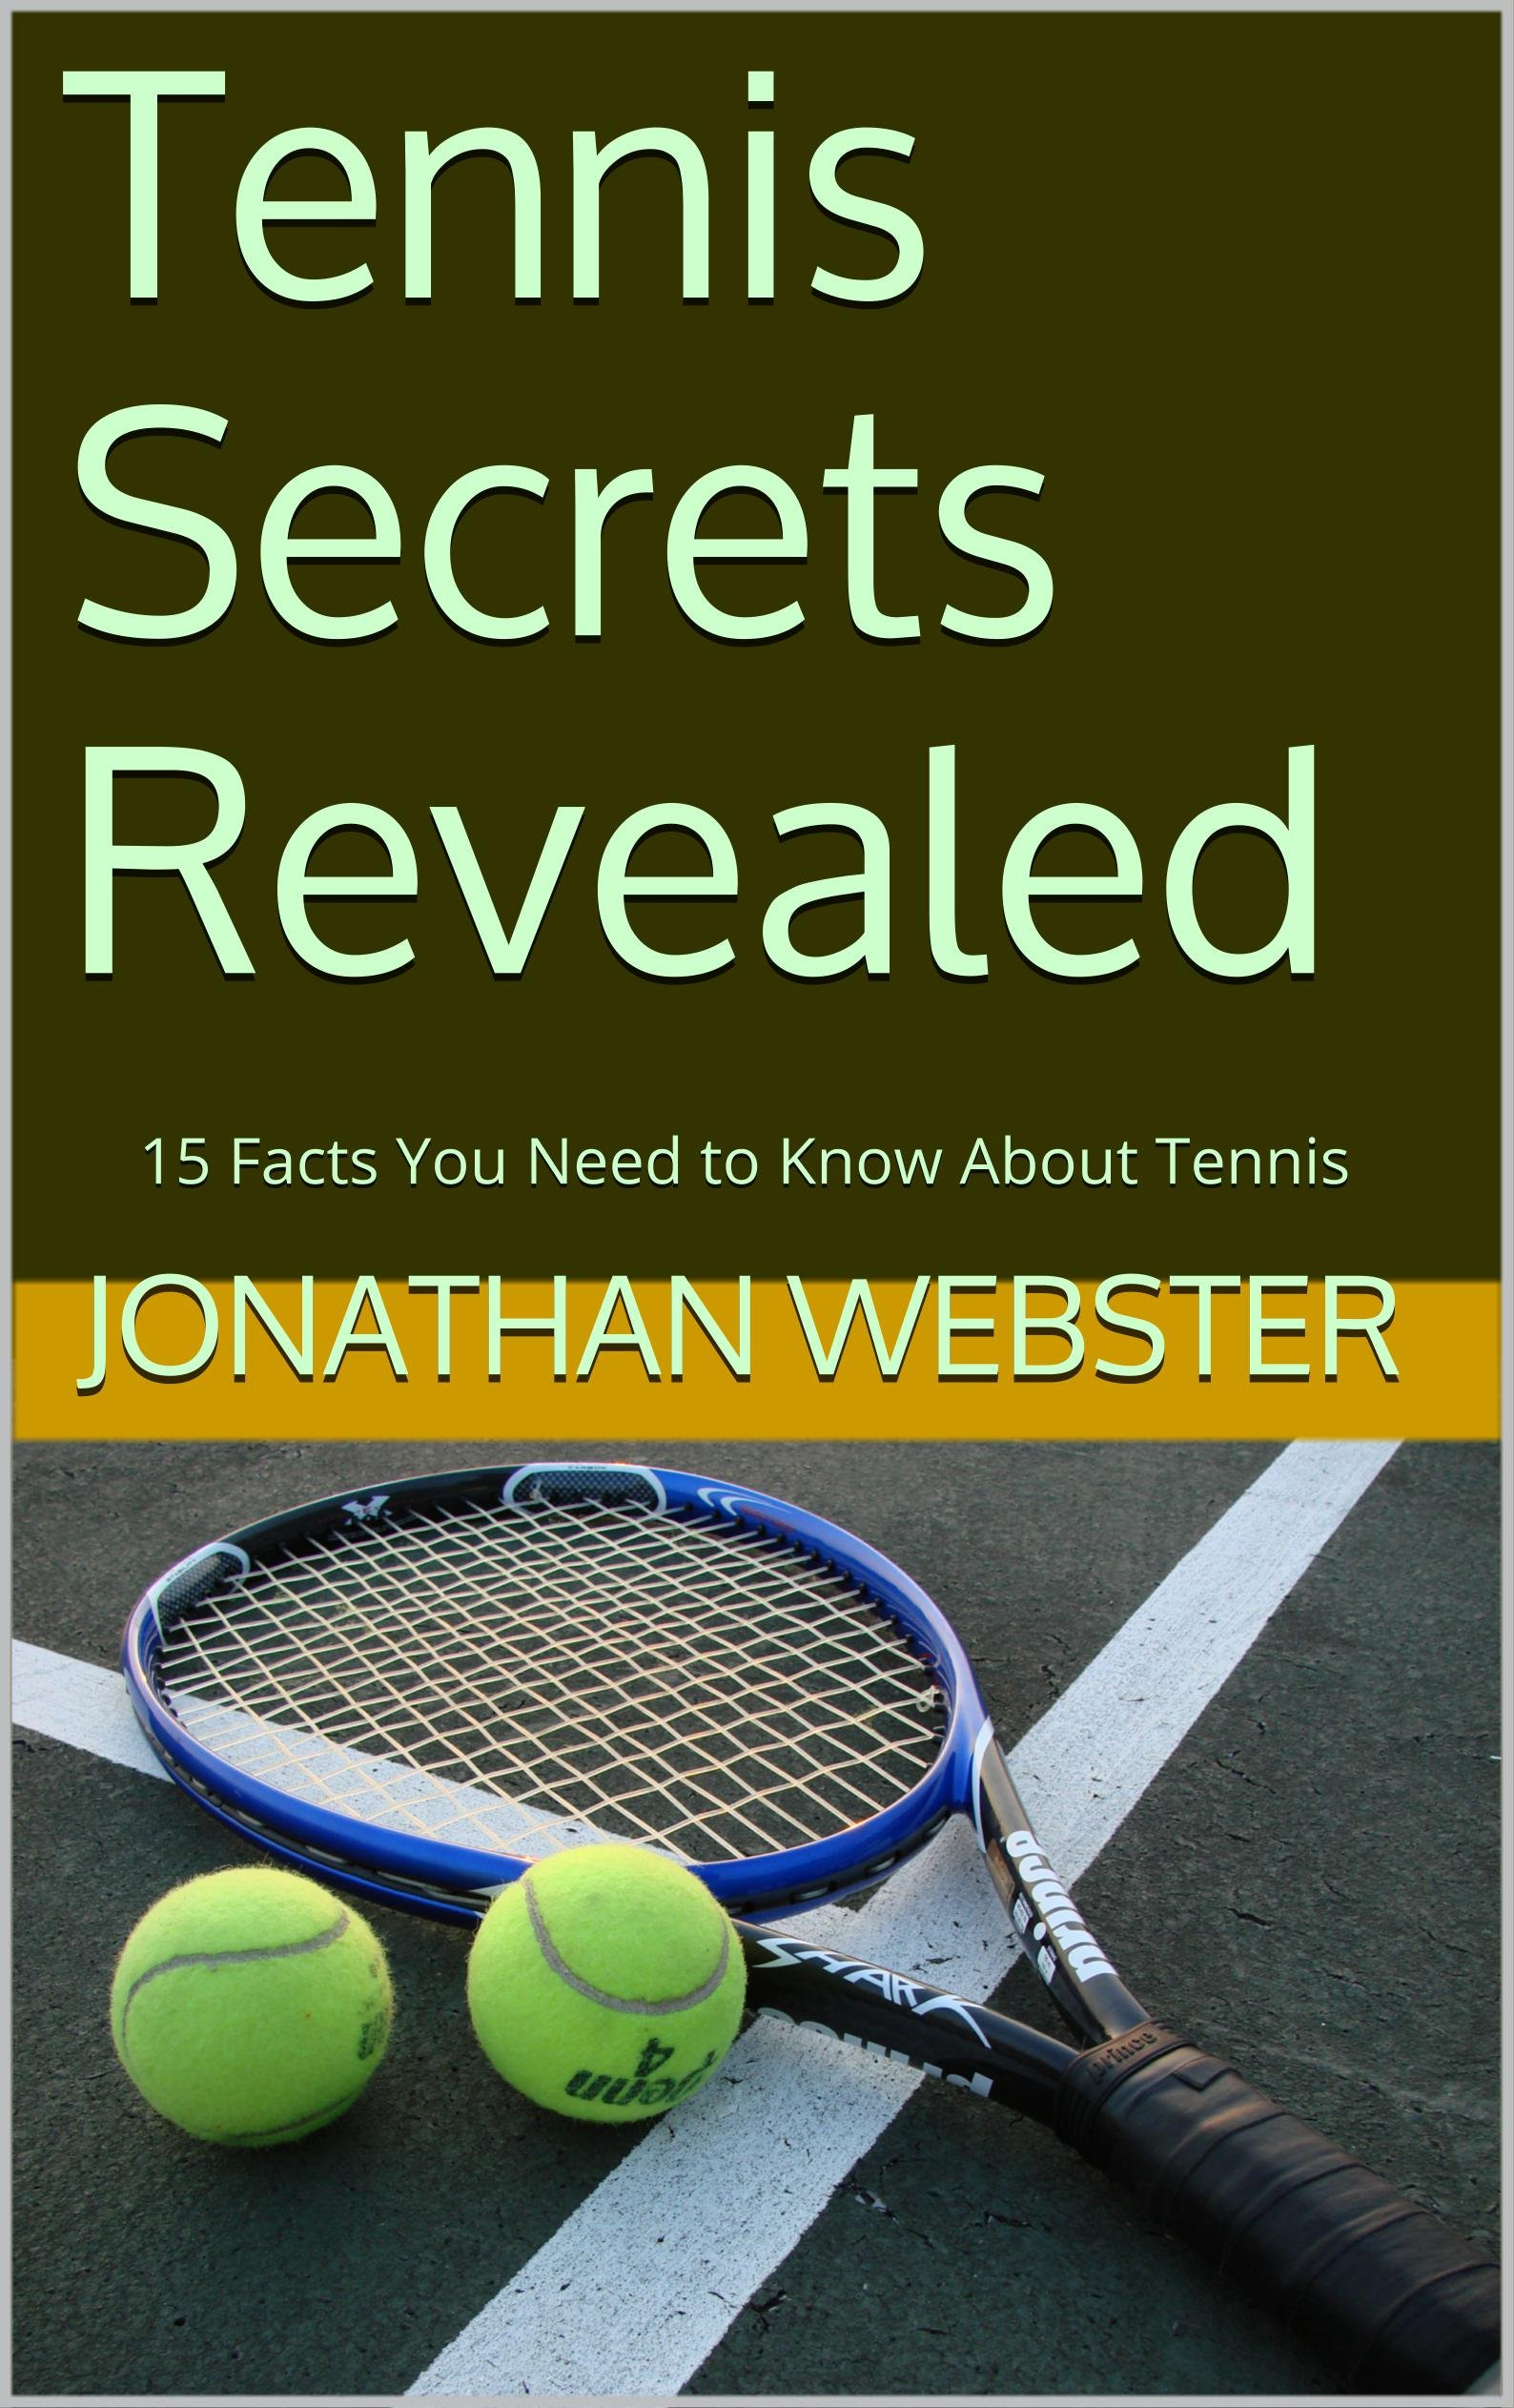 Tennis Secrets Revealed: 15 Facts You Need to Know About Tennis